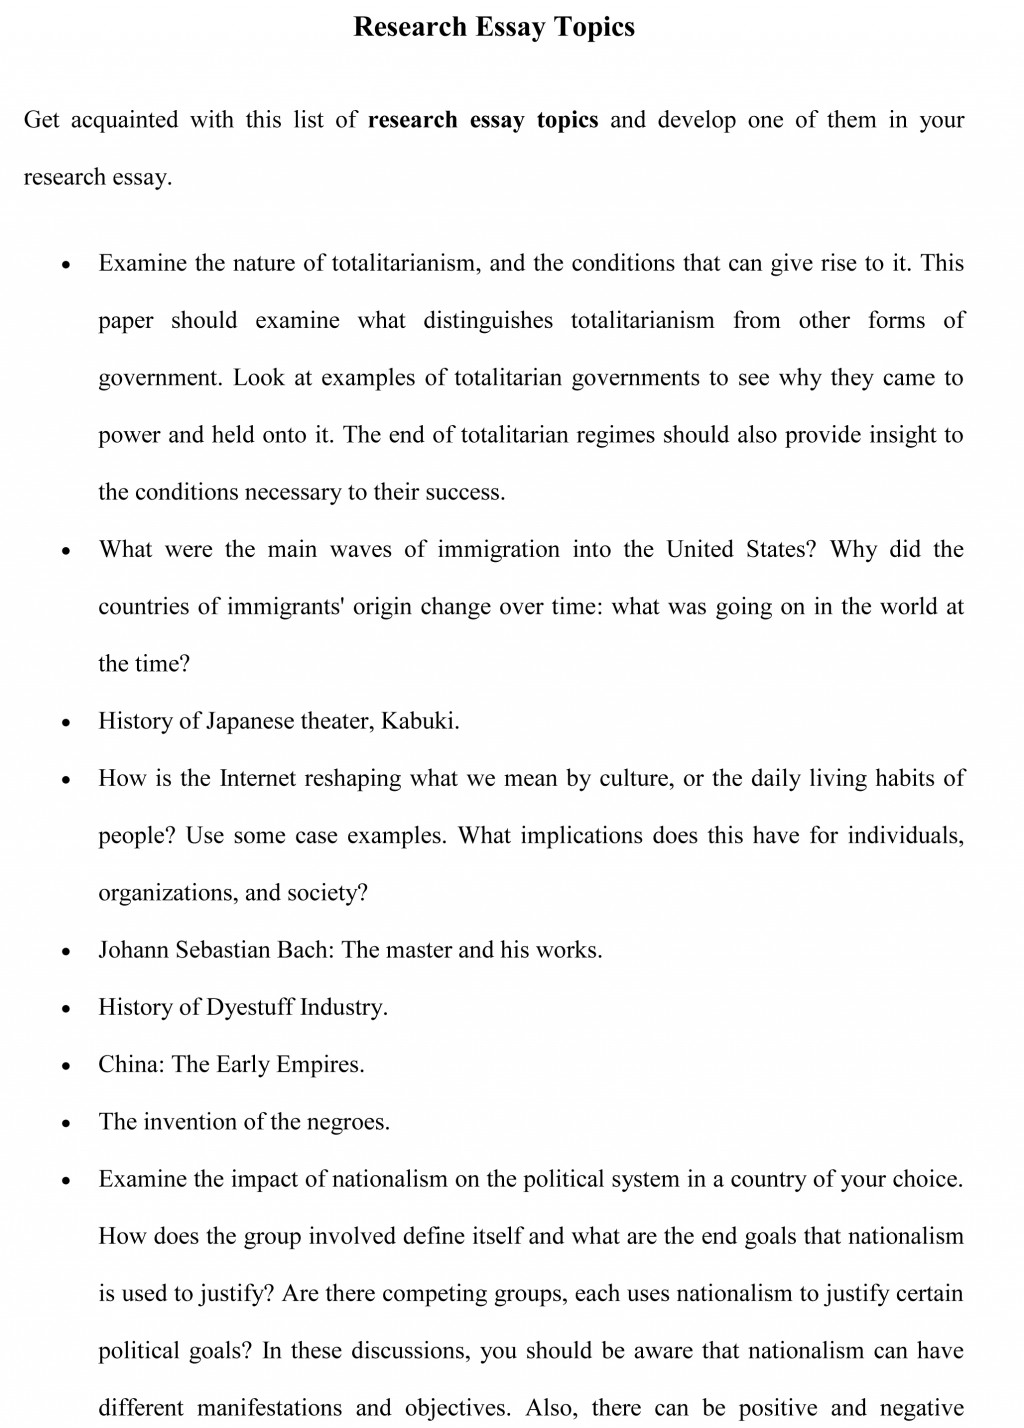 006 Research Paper Essay Topics Sample Controversial Outstanding Ideas Large